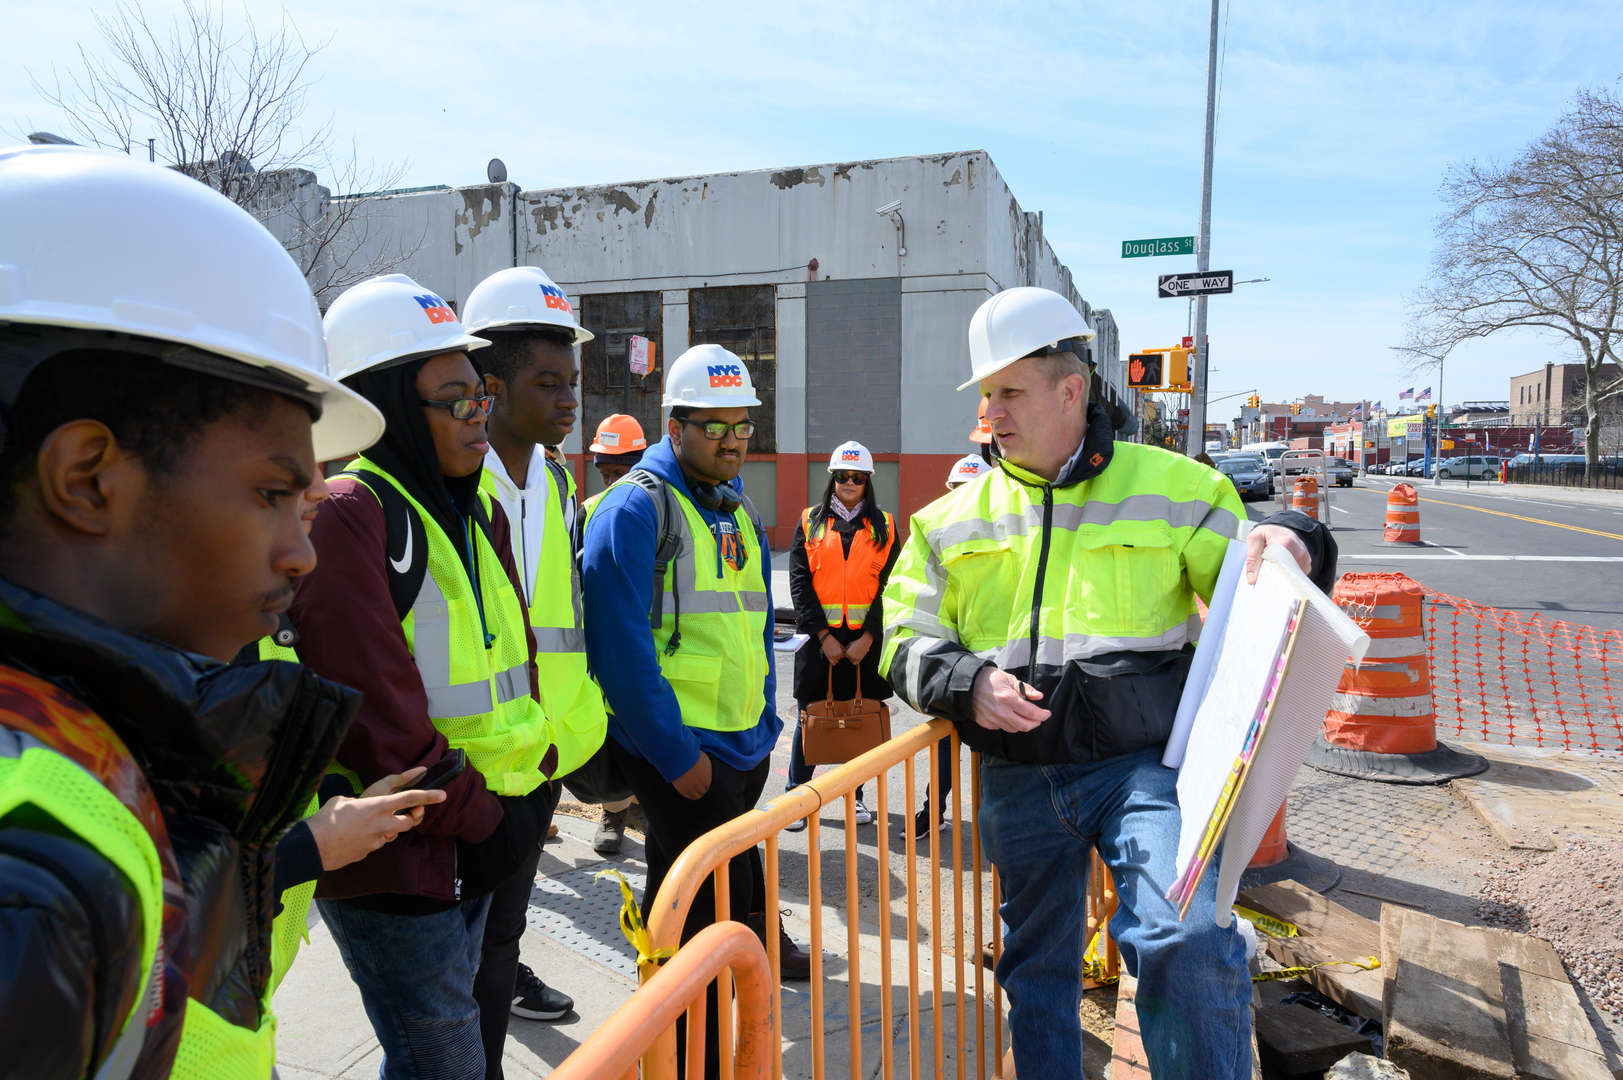 Construction supervisor explaining a work schedule to students